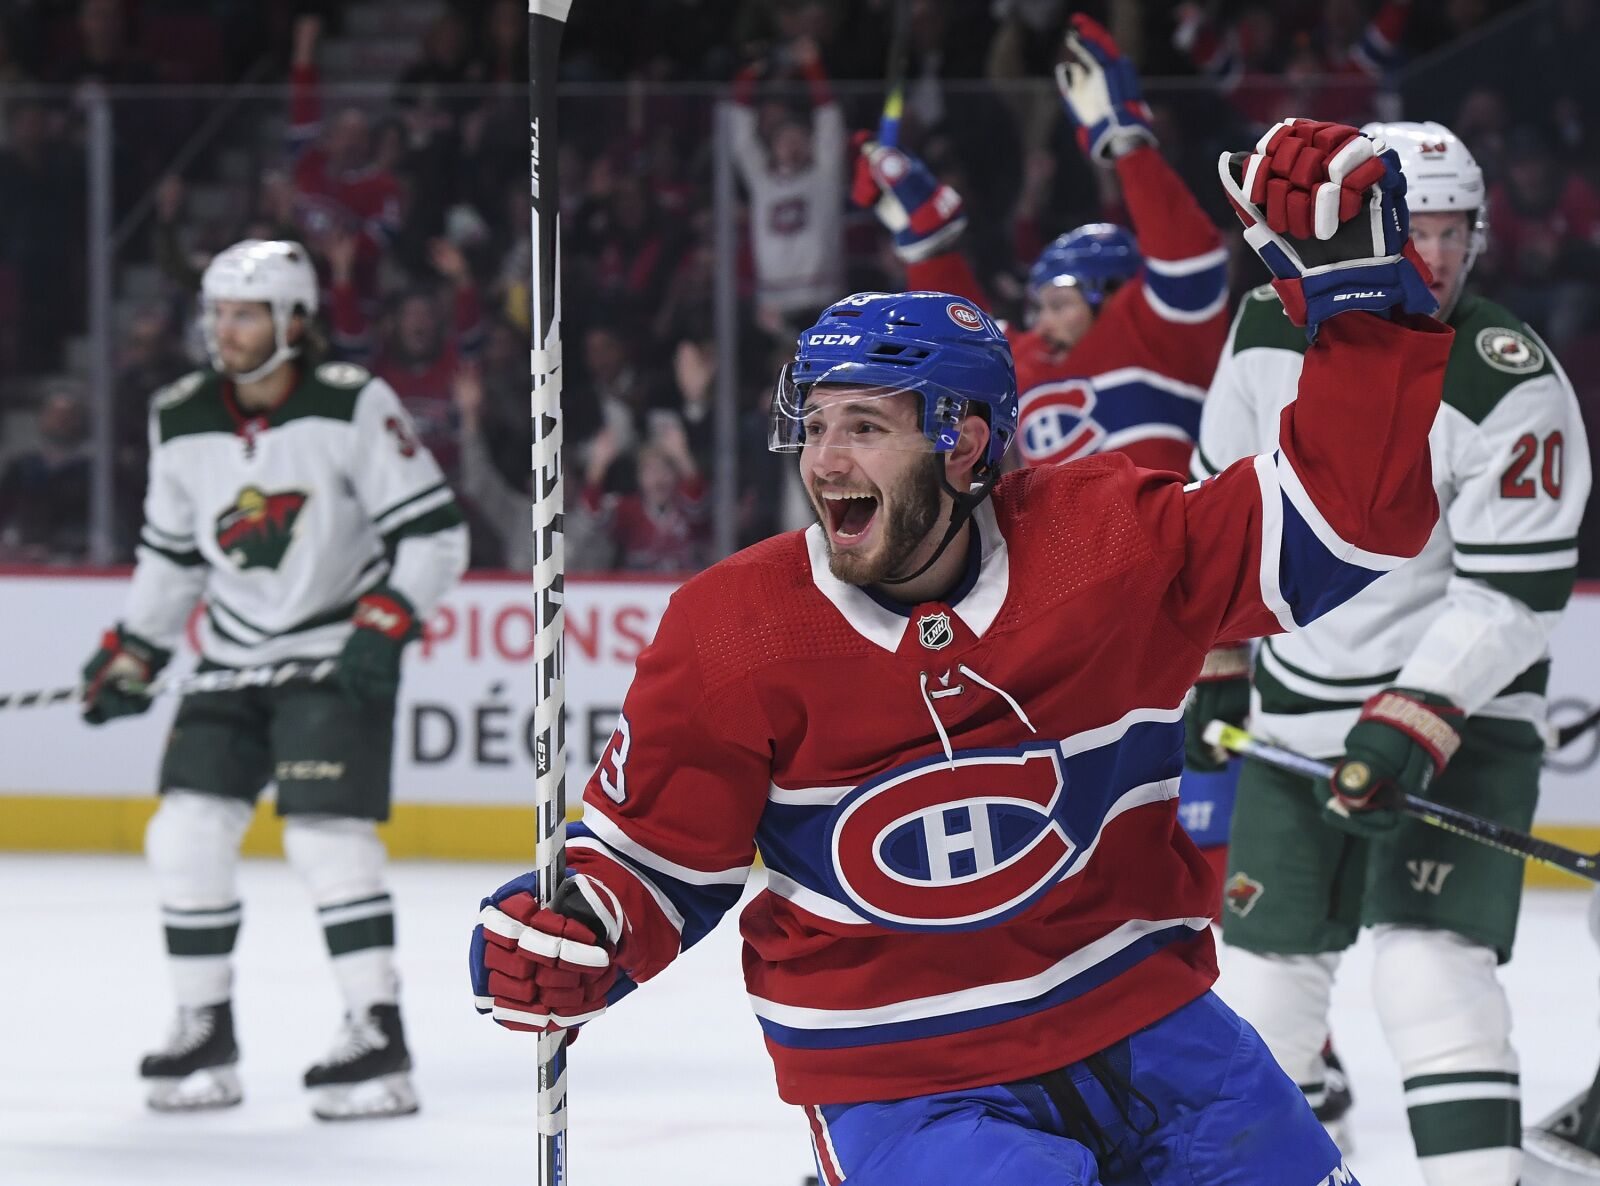 Montreal Canadiens: Victor Mete is proving to be a trend setter in the NHL